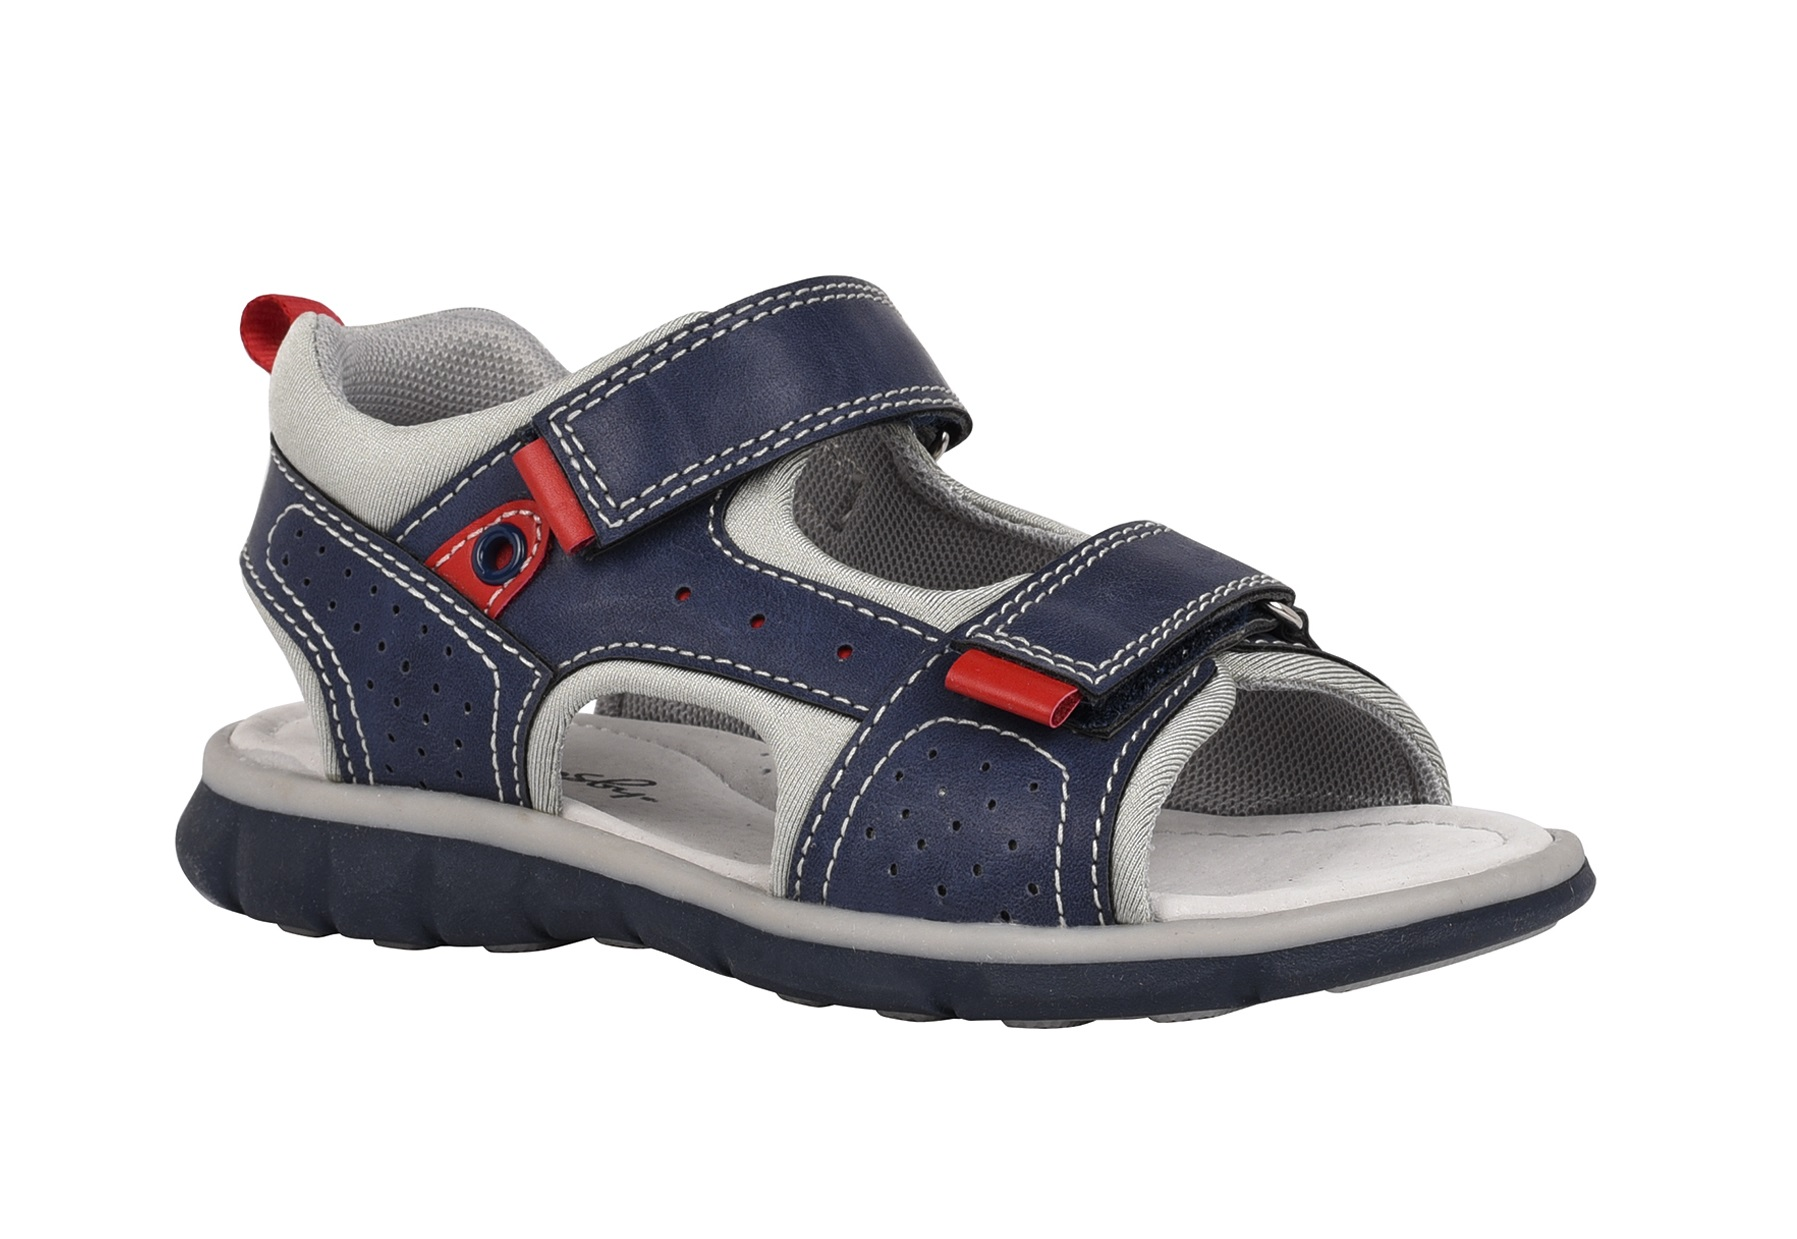 competitive price 7bdab f26e6 Last Pairs: 12 UK - Toddler-boys-Sandals : NZ's Leading Kids ...